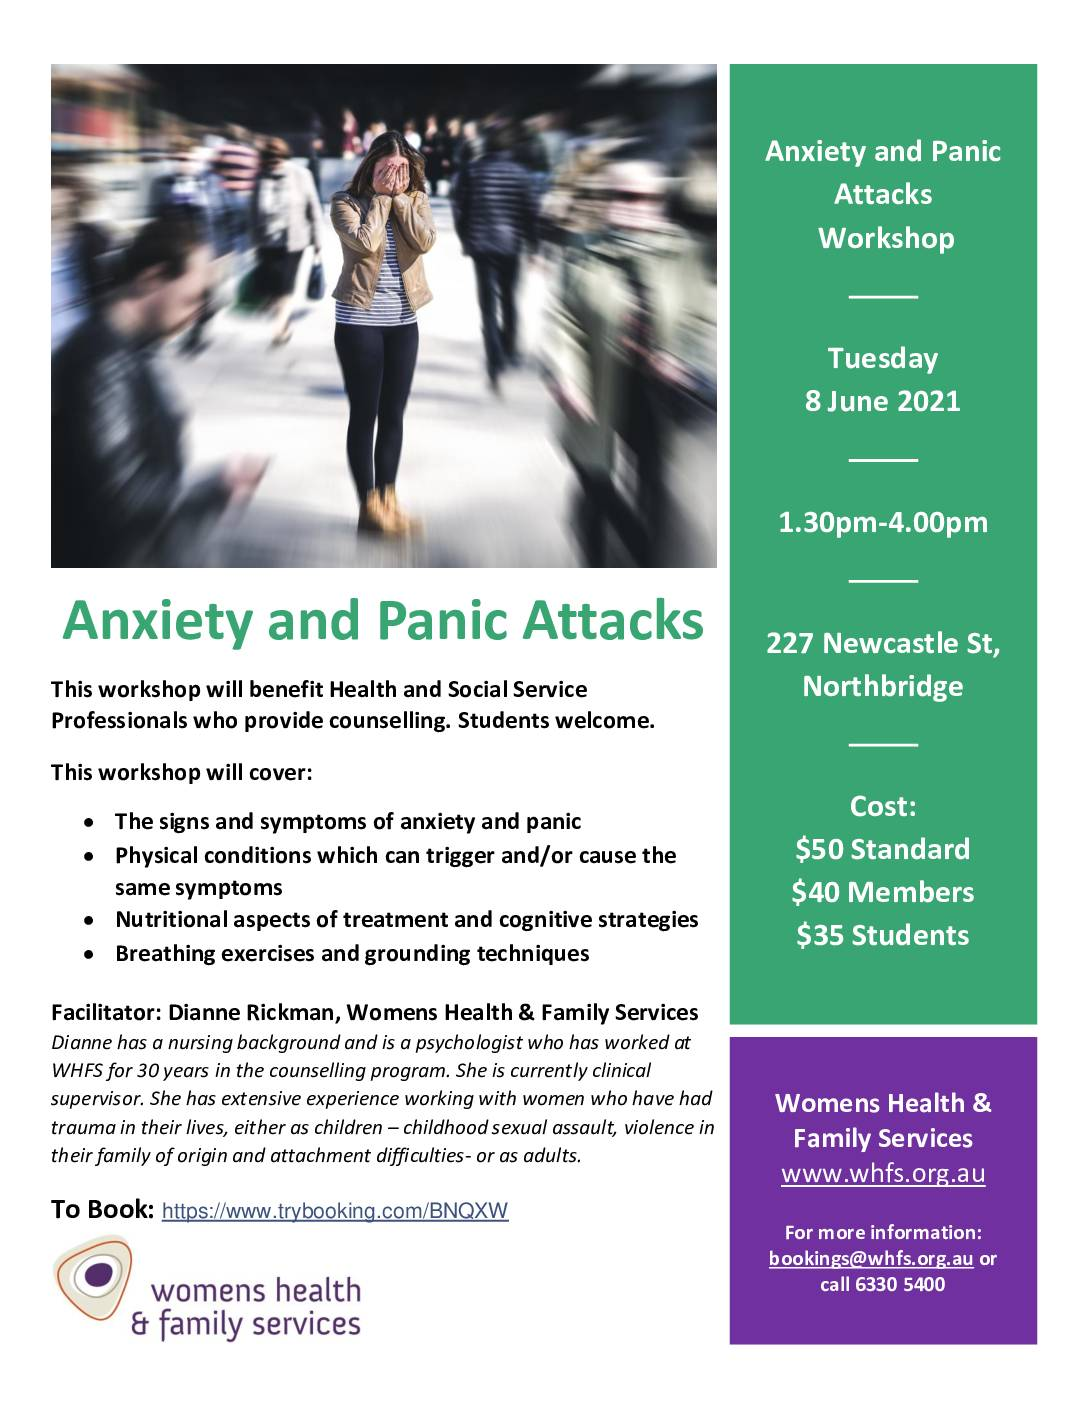 Anxiety and Panic Attacks Workshop Flyer